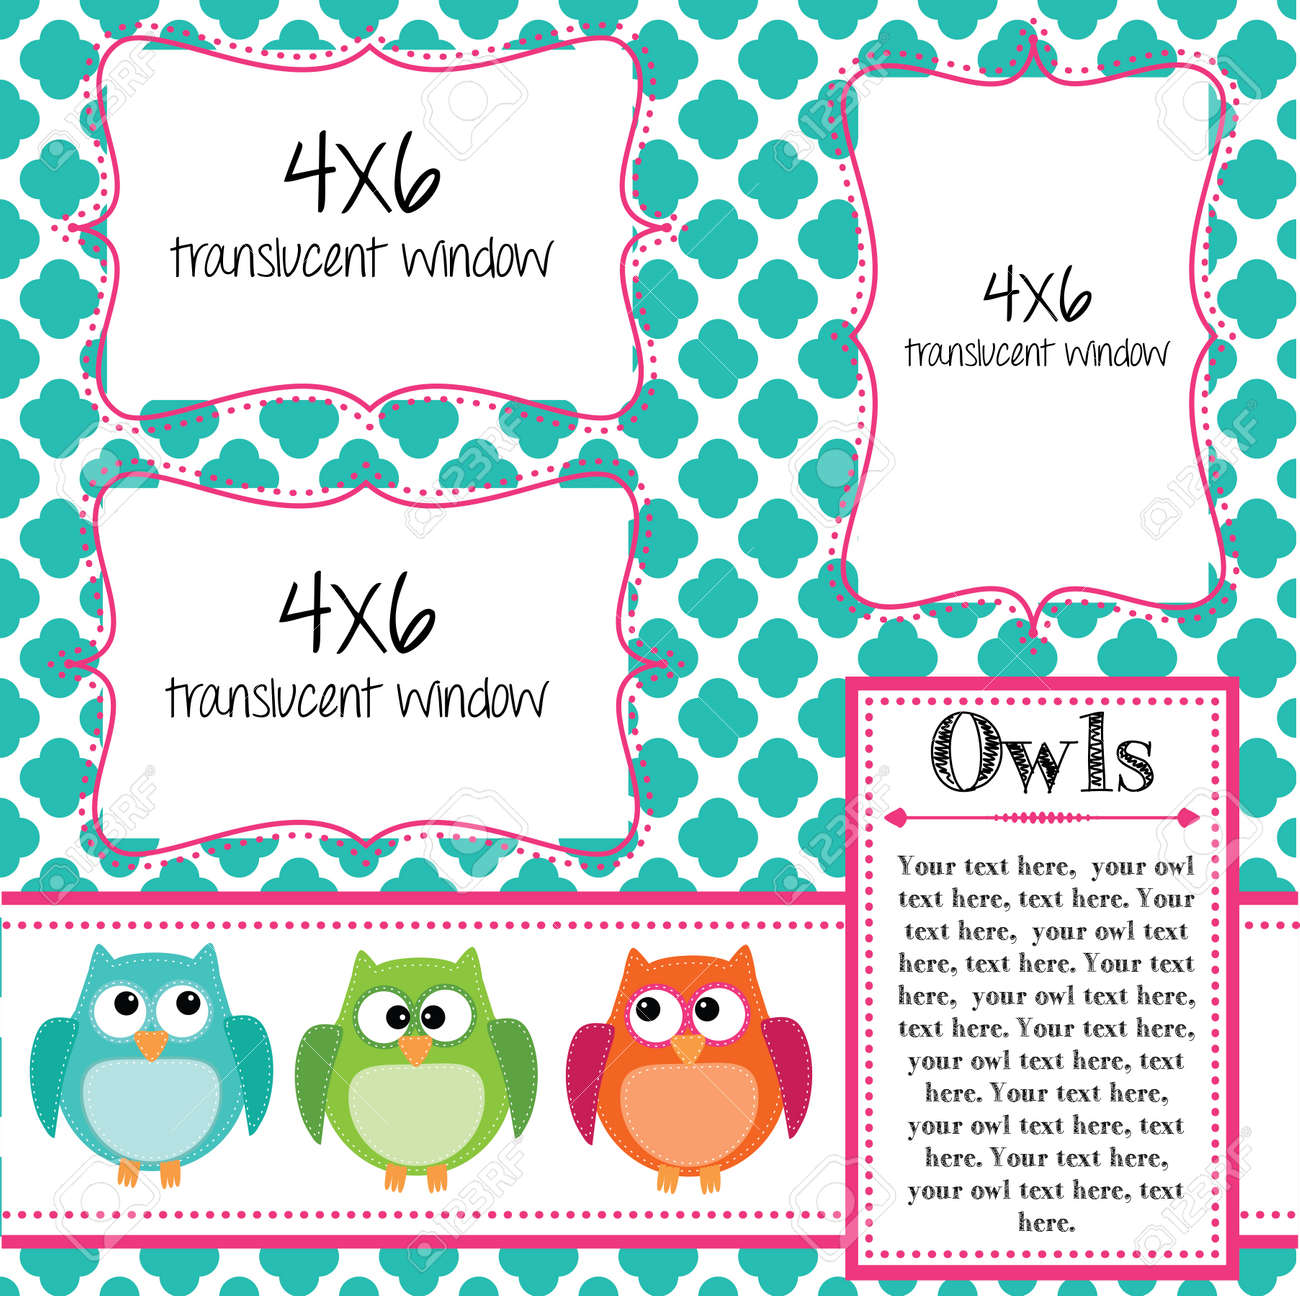 Wonderful 1.5 Inch Circle Template Tall 13 Birthday Invitation Templates Regular 16 Birthday Invitation Templates 2 Binder Spine Template Old 2 Inch Button Template Orange2 Inch Circle Template Owl Scrapbooking Template With Banner Or Bunting And 4x6 Frames ..